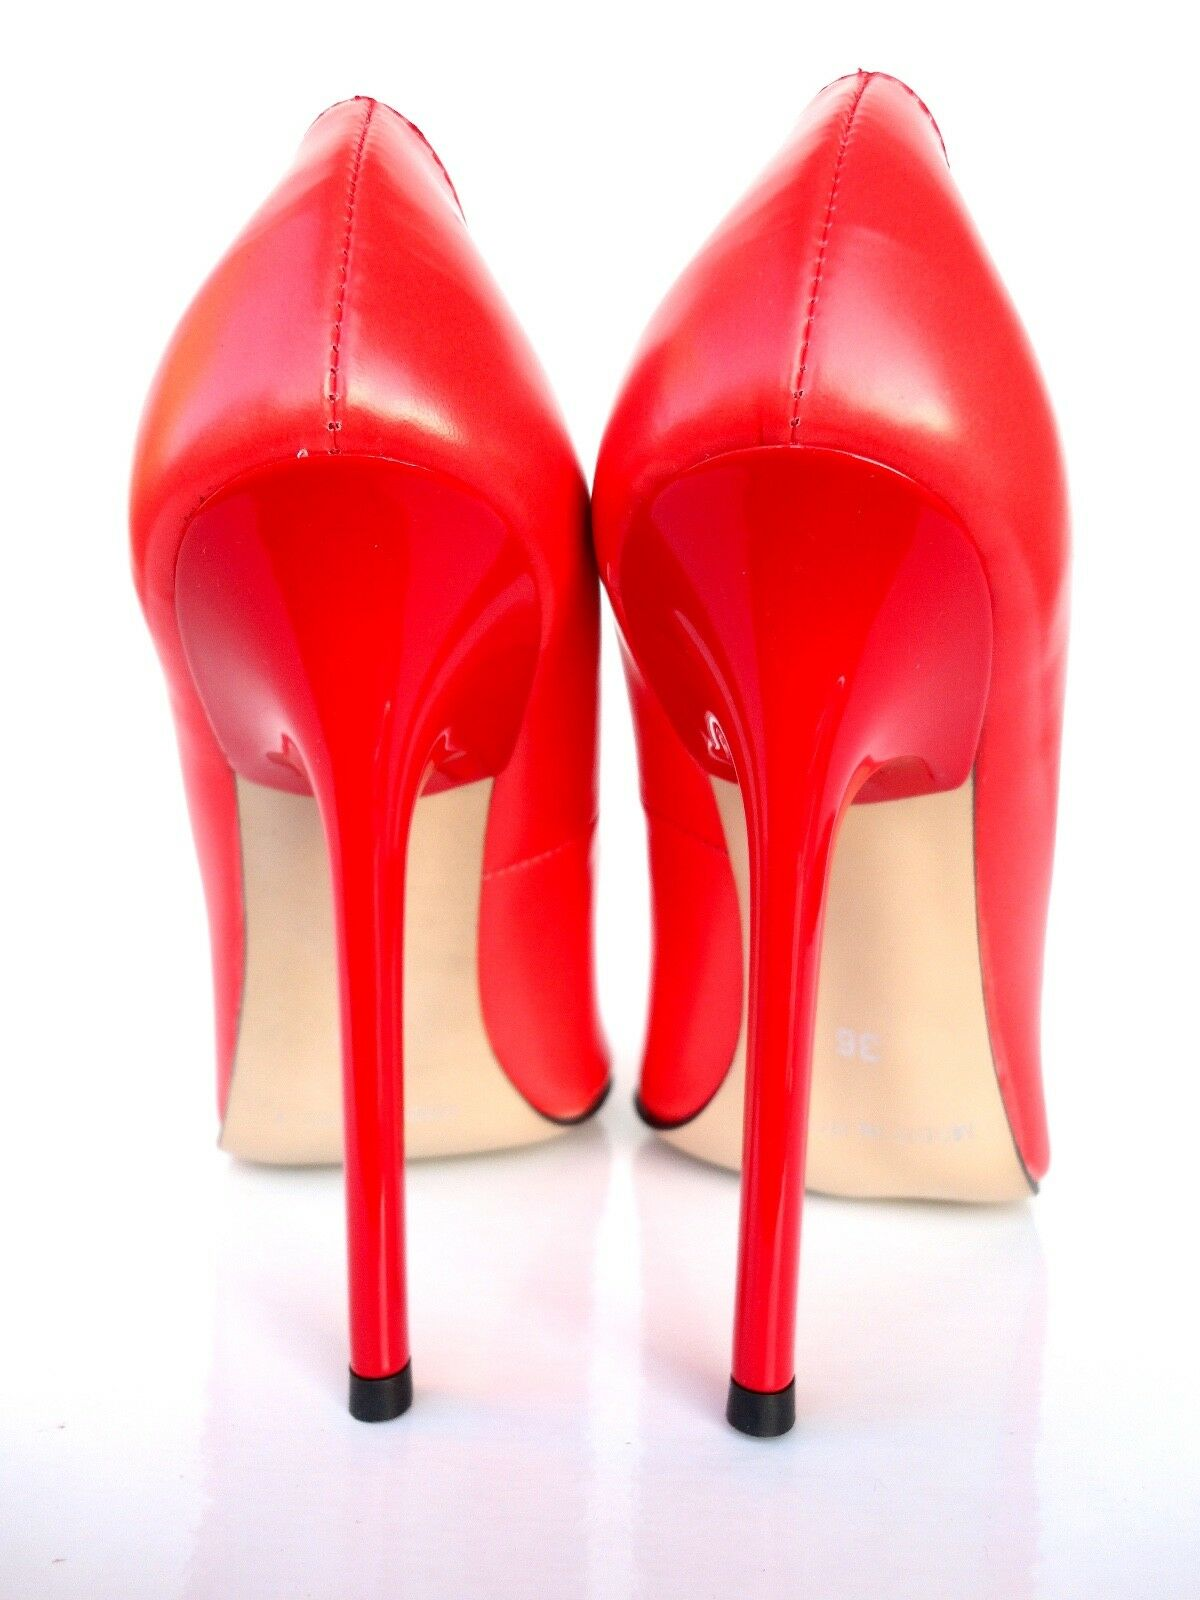 GIOHEL ITALY HIGH HEELS POINTY TOE PUMPS SCHUHE LEATHER COURT SHOES RED 37